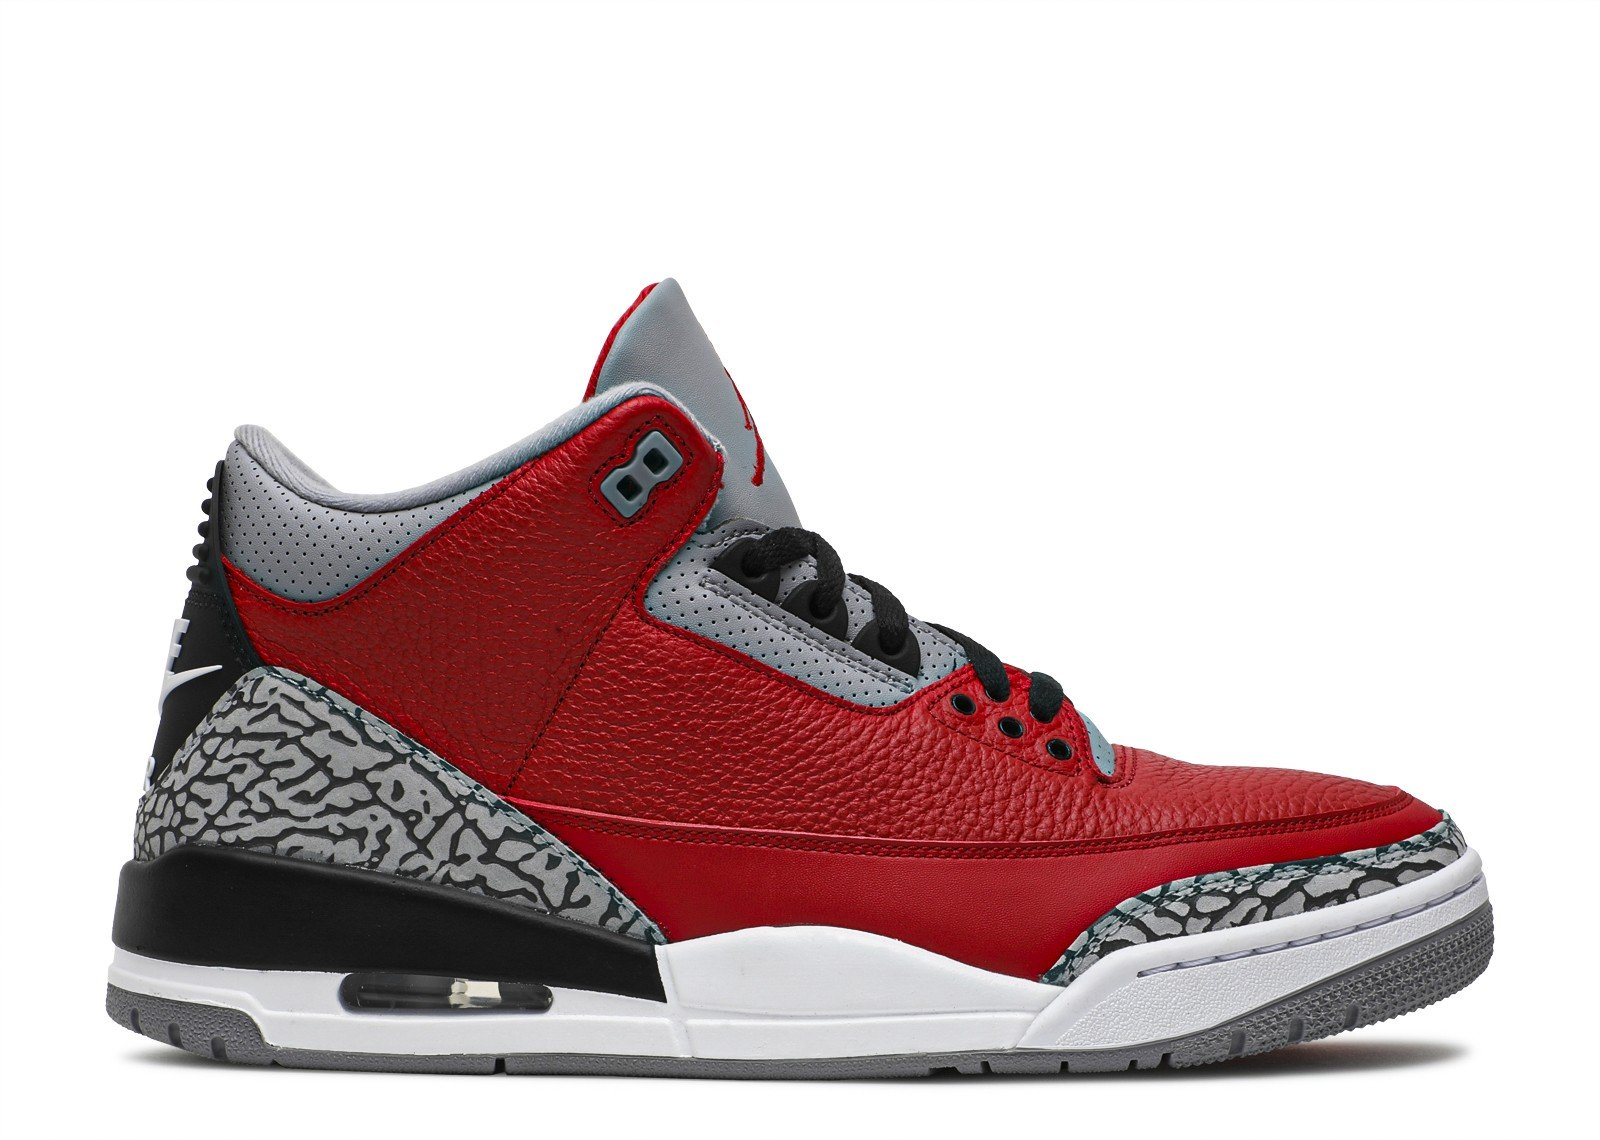 Jordan 3 Retro SE Unite Fire Red - CookiesandKicksLA